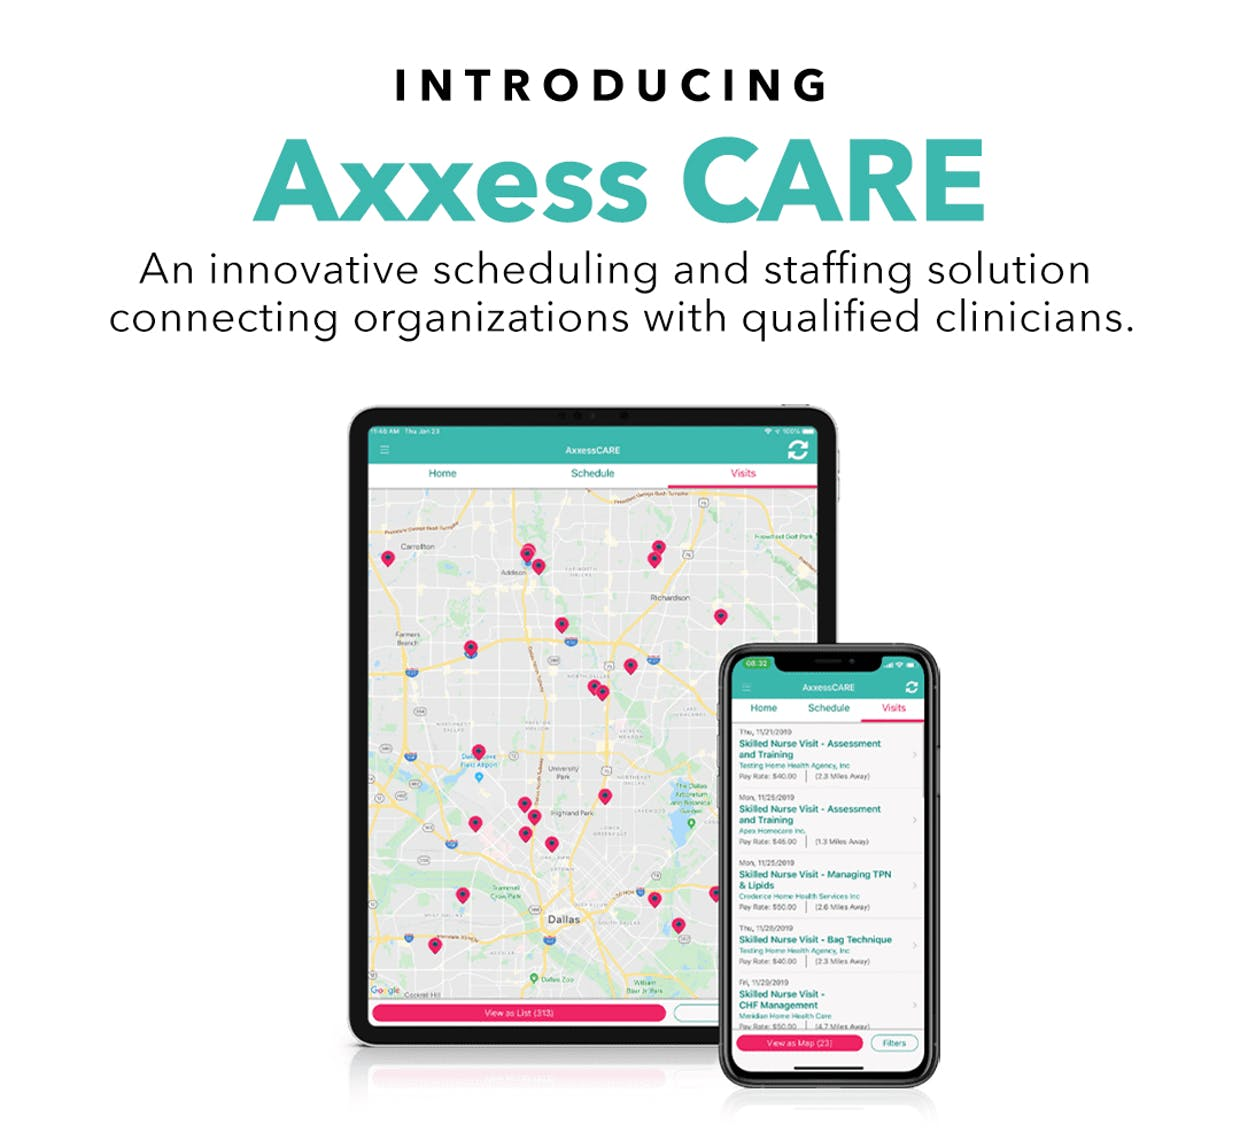 Axxess CARE, a staffing and scheduling solution, is now available nationwide to all Axxess Home Health clients.